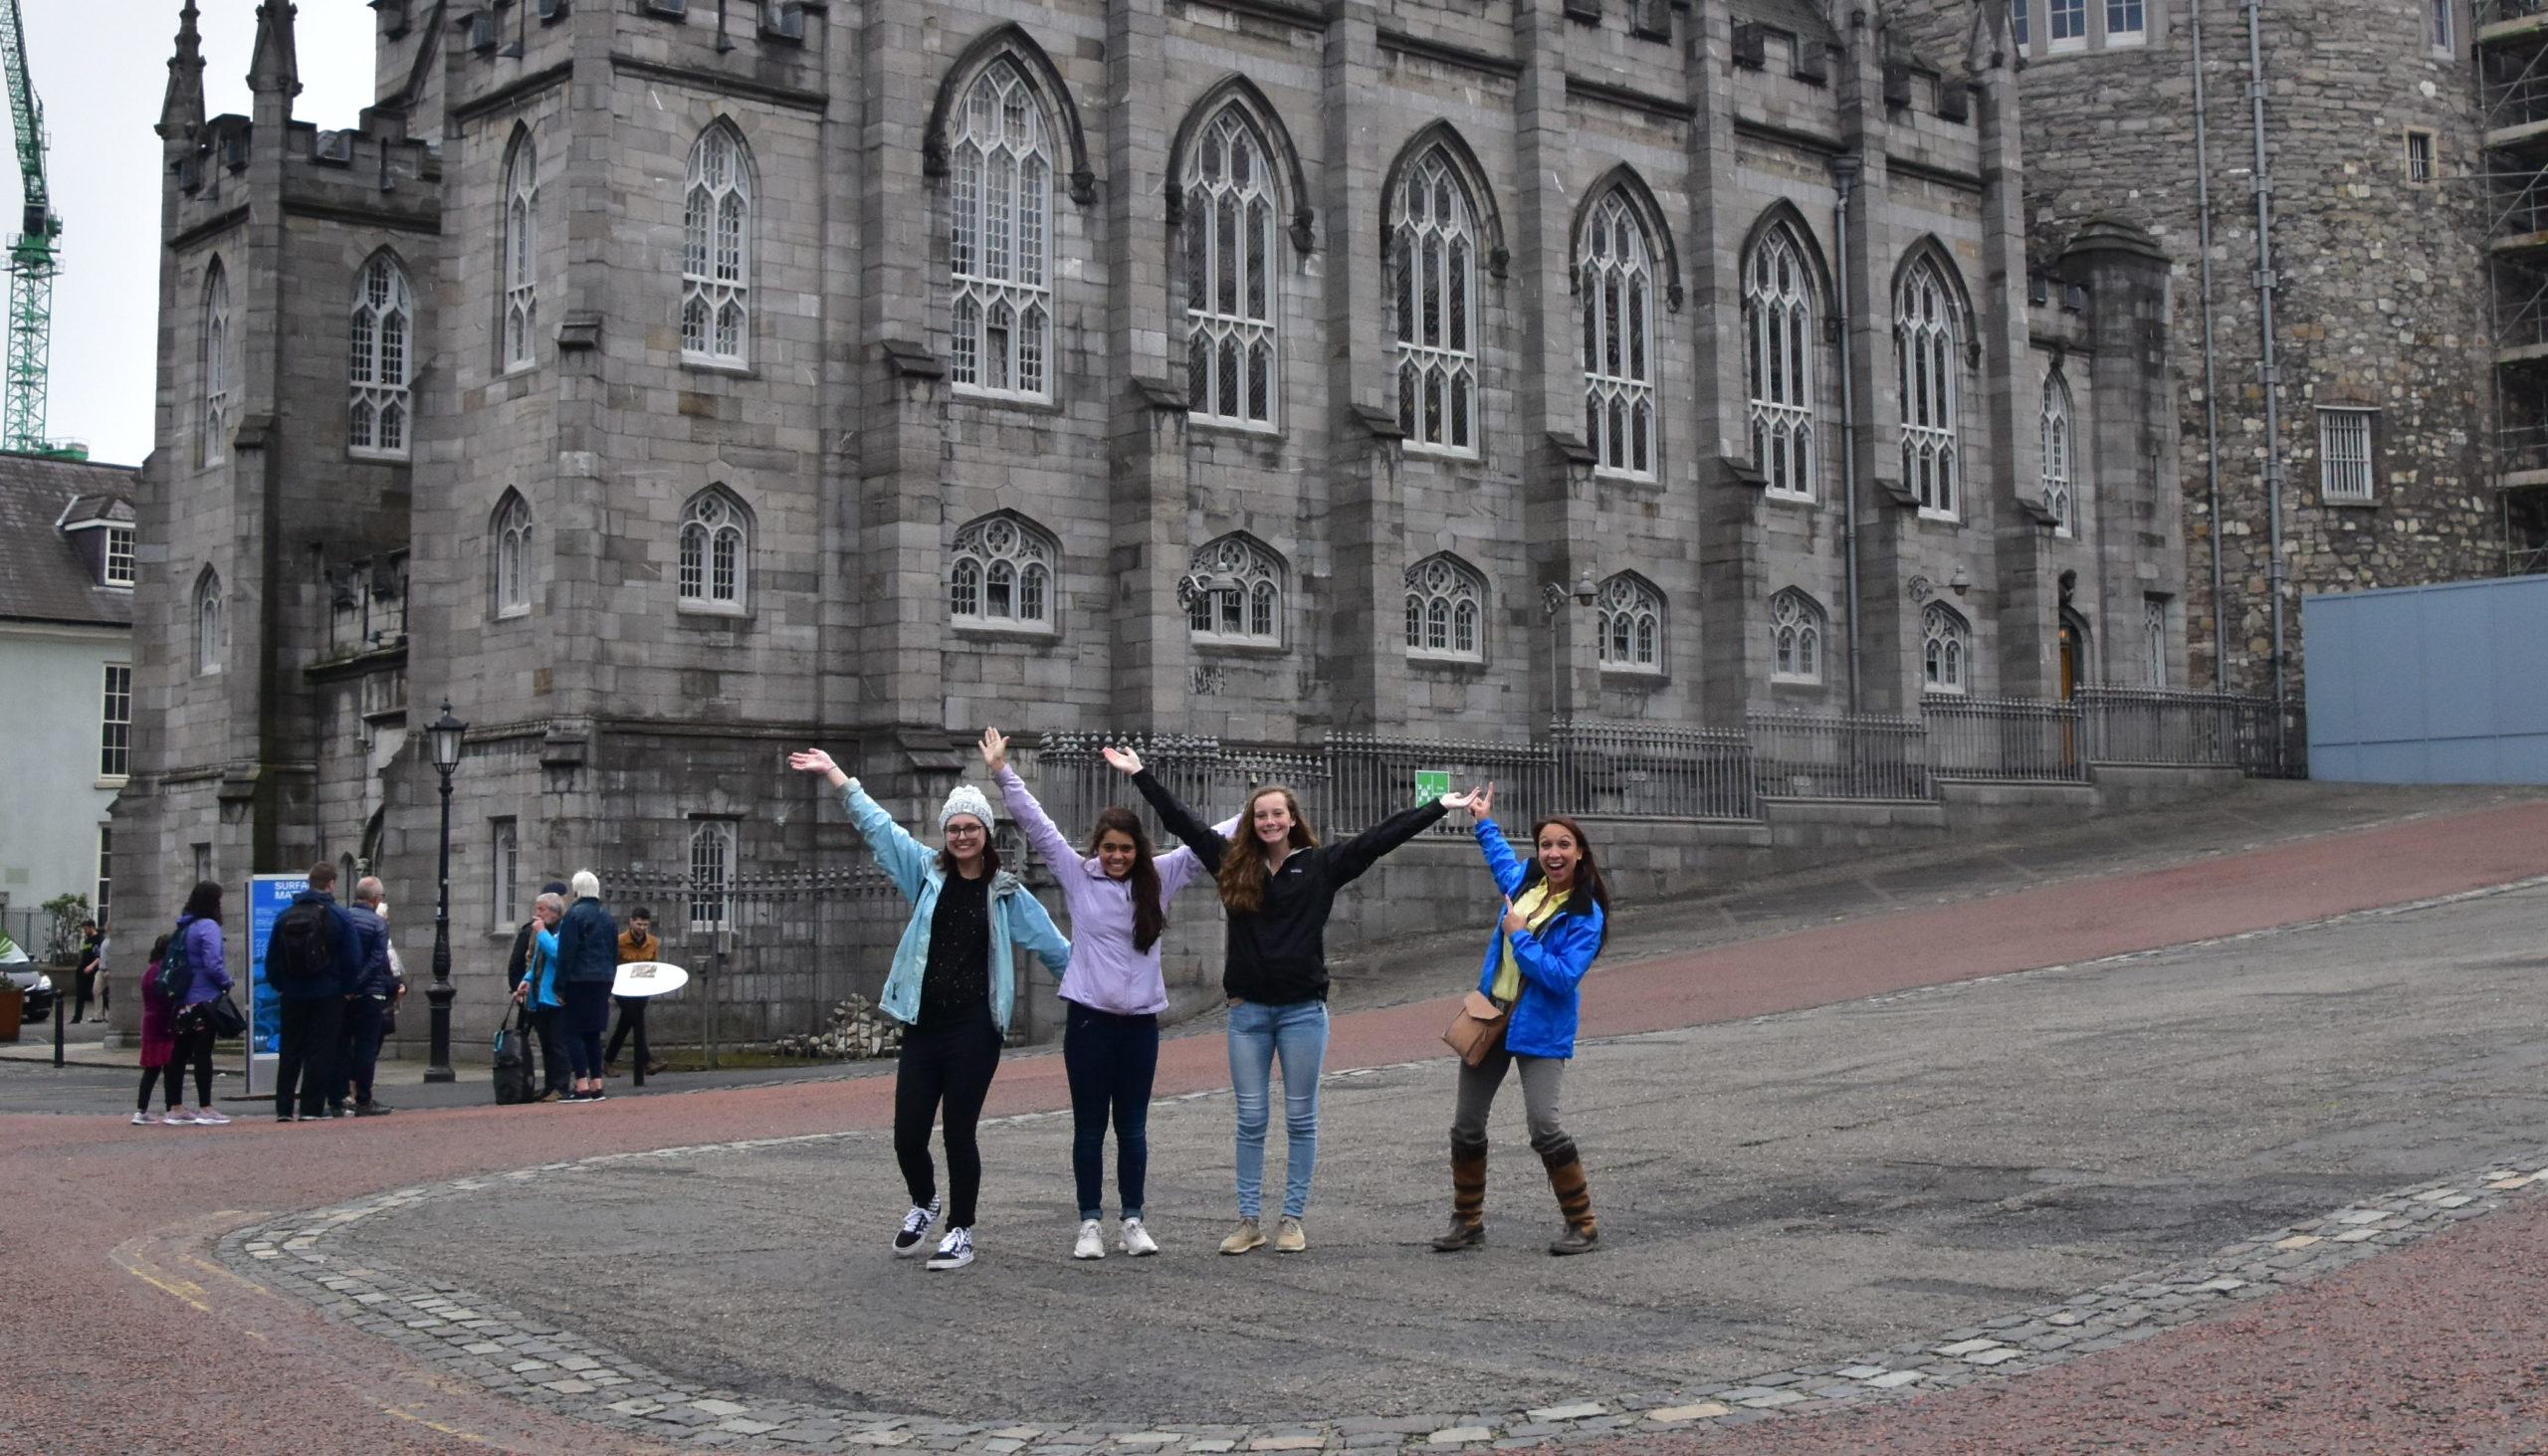 students posing in front of a building